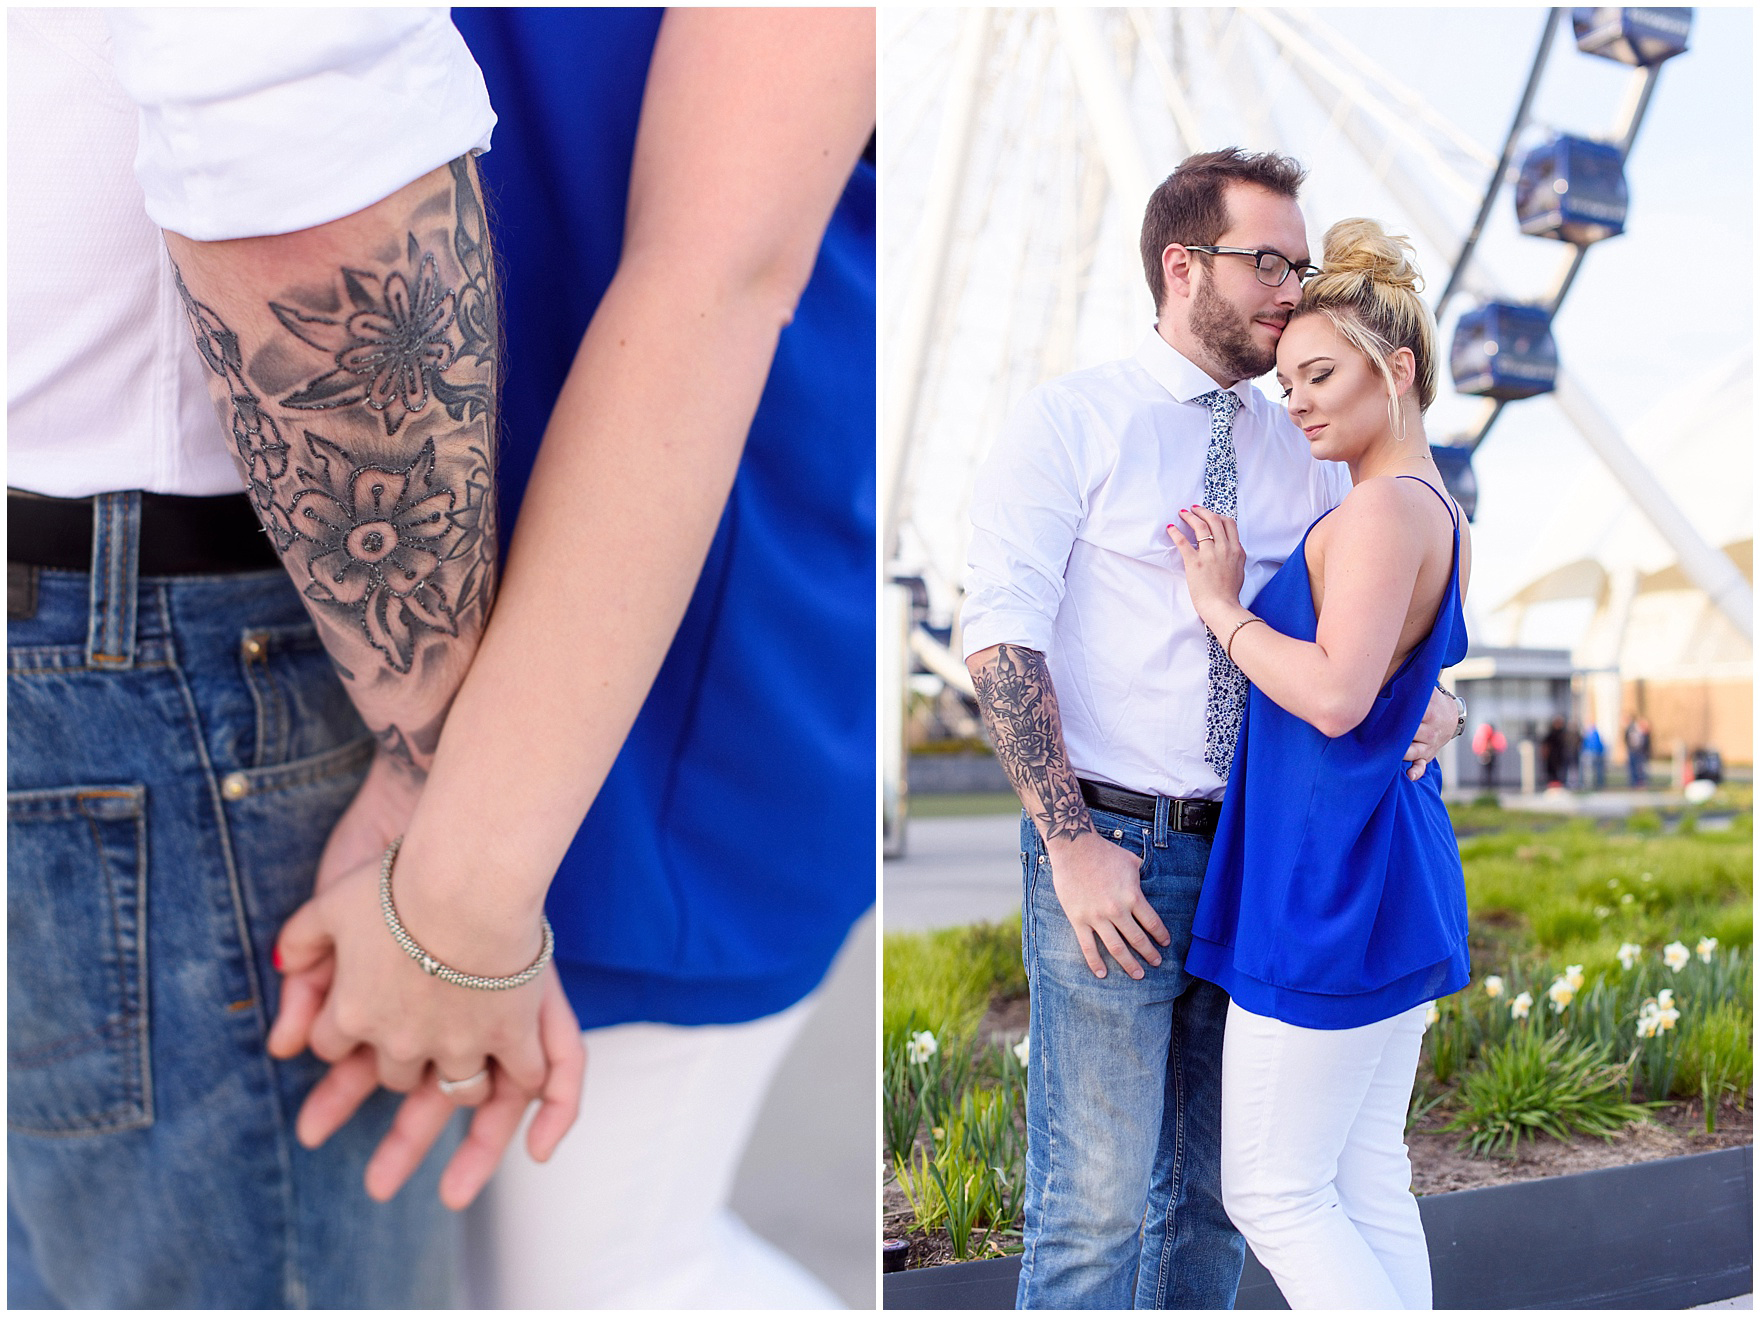 A couple poses in front of the Centennial Wheel during a Chicago Navy Pier engagement photography session.